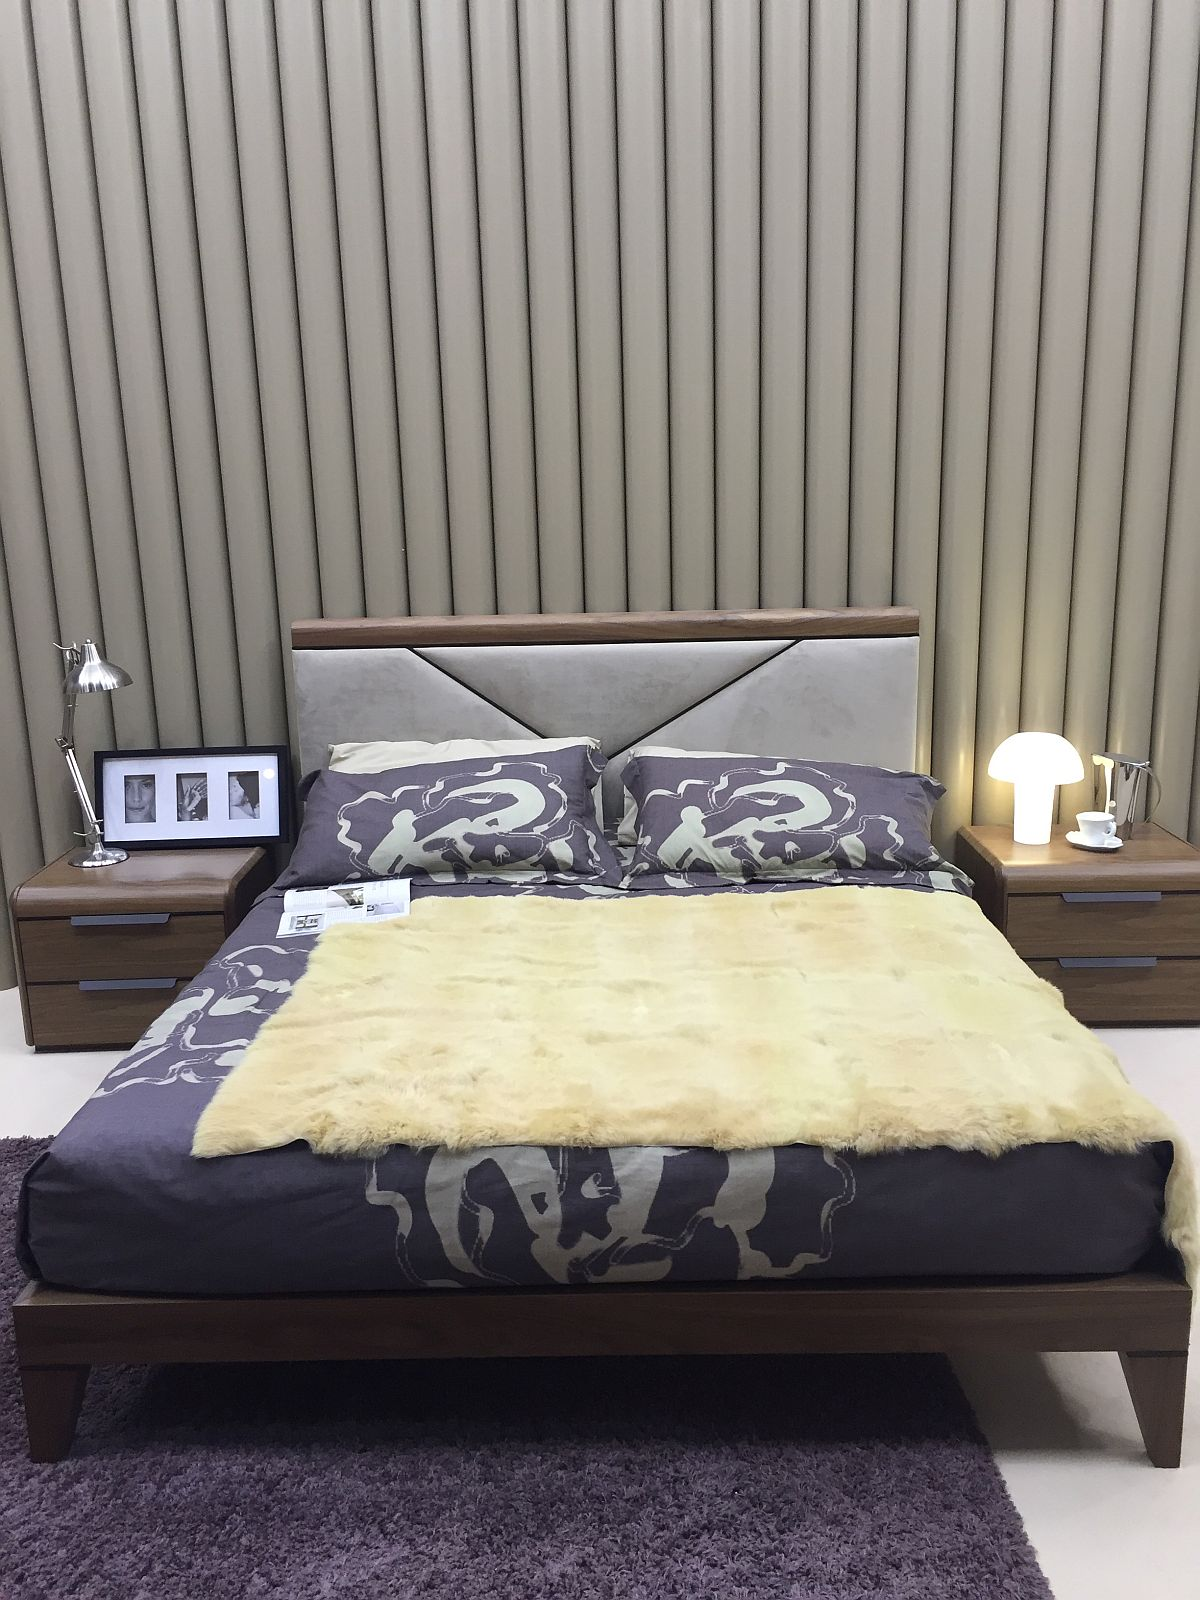 Nifty bed design from Benedetti – Salone del Mobile 2016